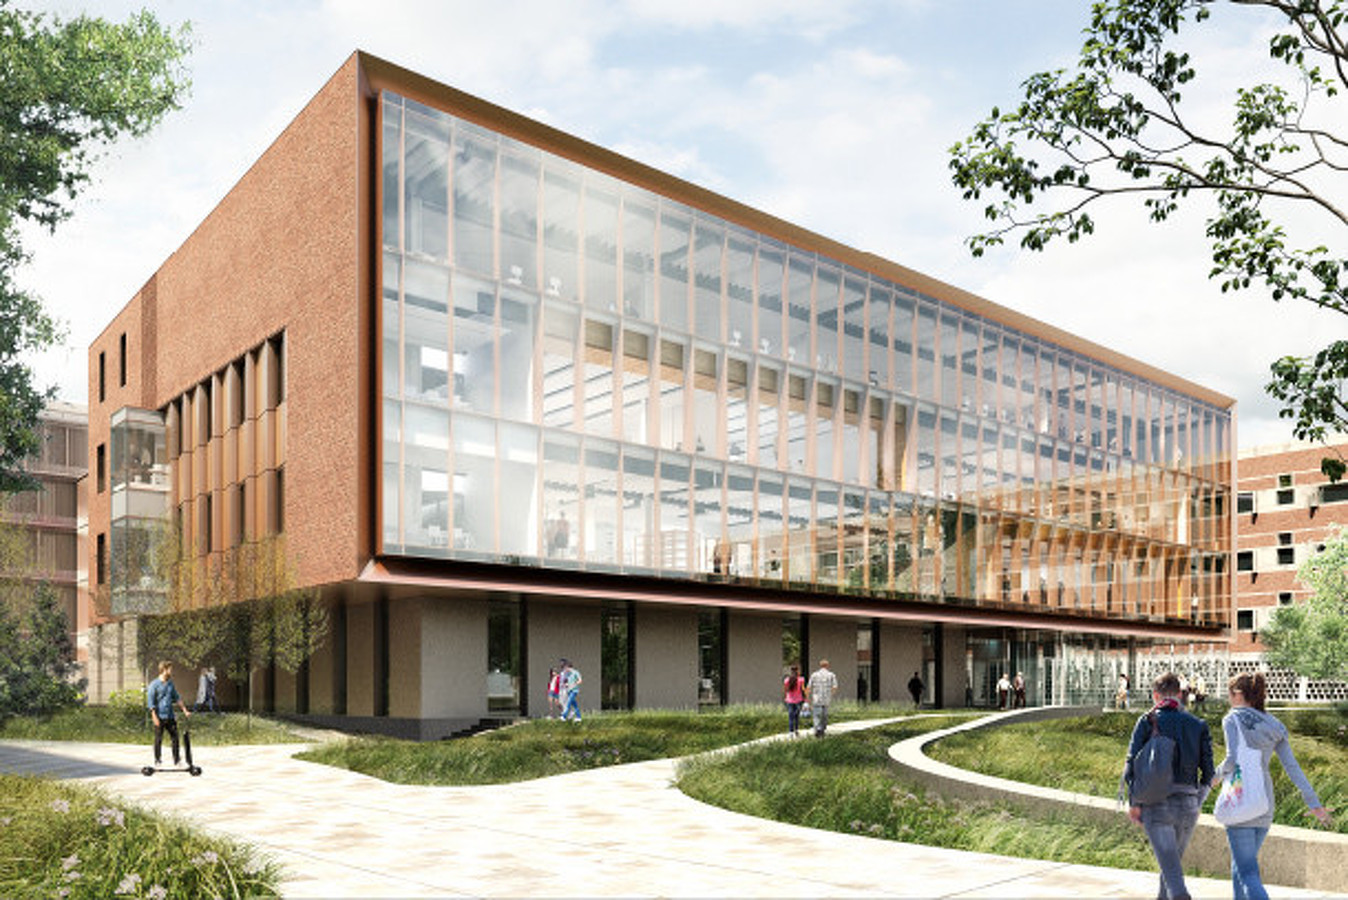 Penn State 2022 Calendar.Trustee Committee Oks Plans For New Penn State Engineering Building Chiller Plant Expansion State College Pa